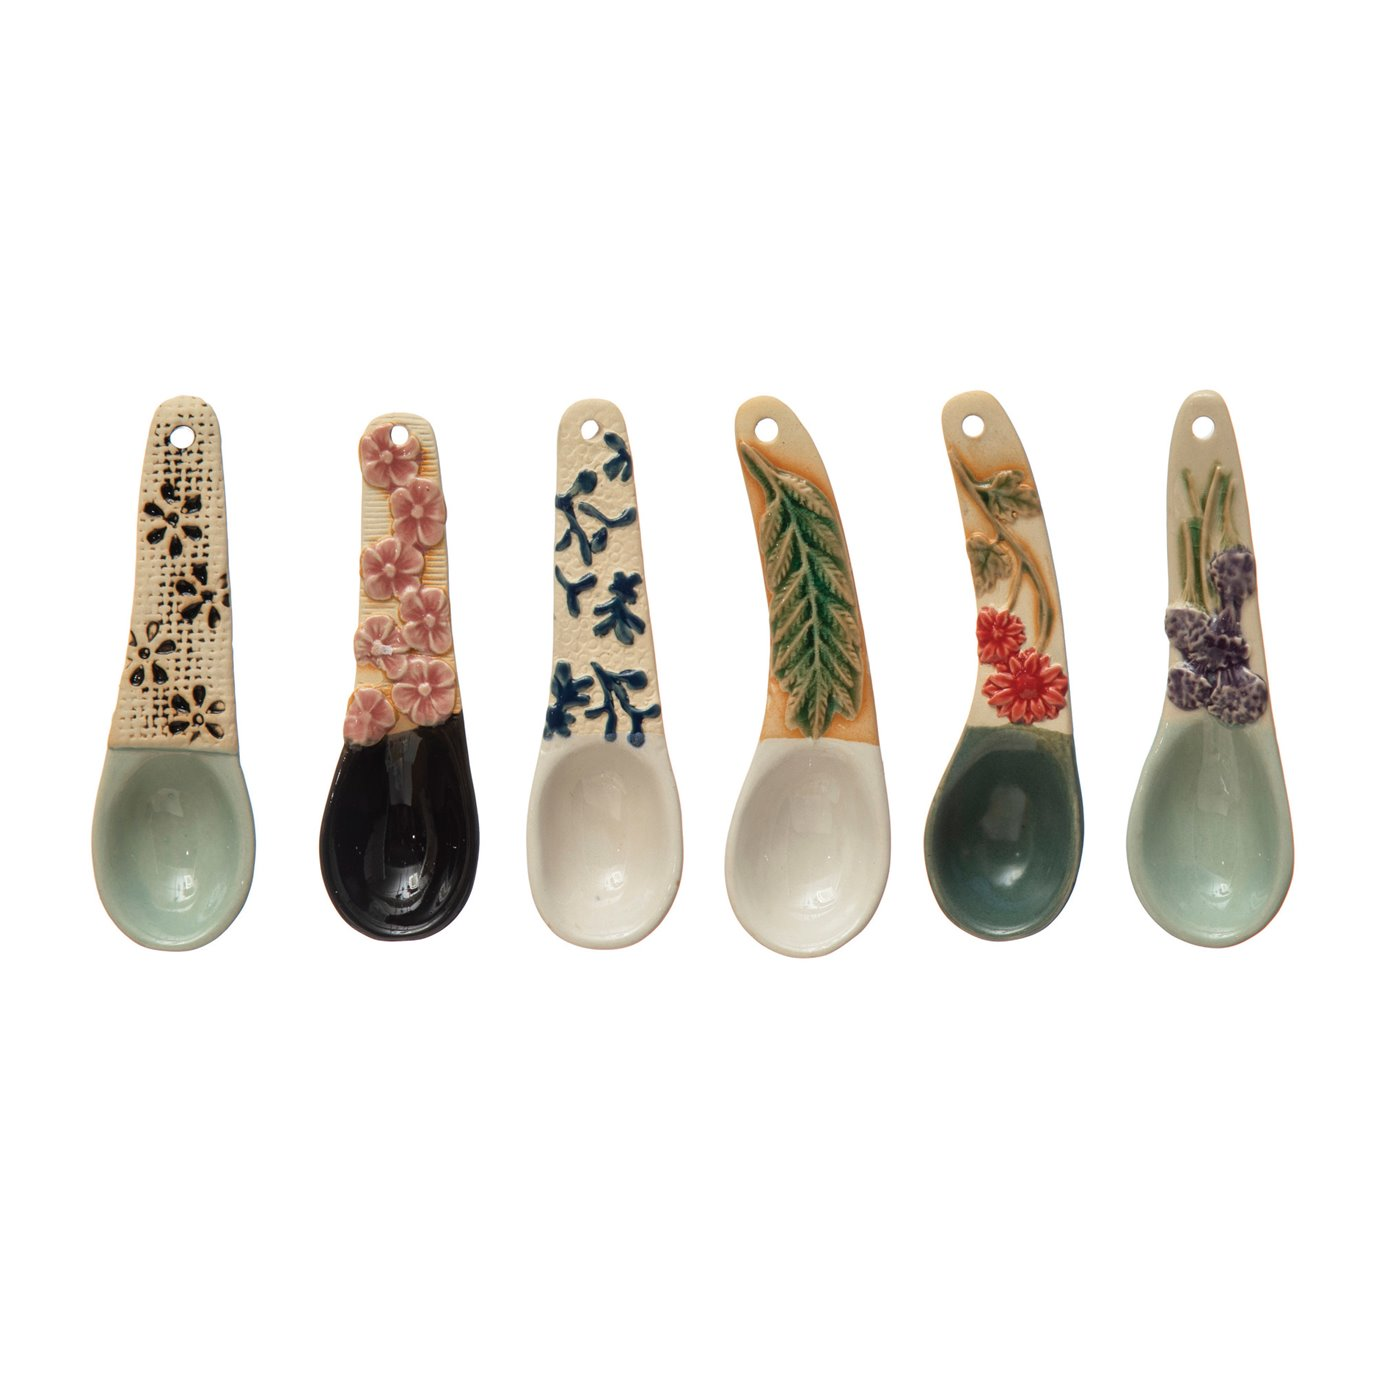 """4-1/4""""L Hand-Painted Stoneware Spoon w/ Floral Design Handle, 6 Styles (Each One Will Vary)"""